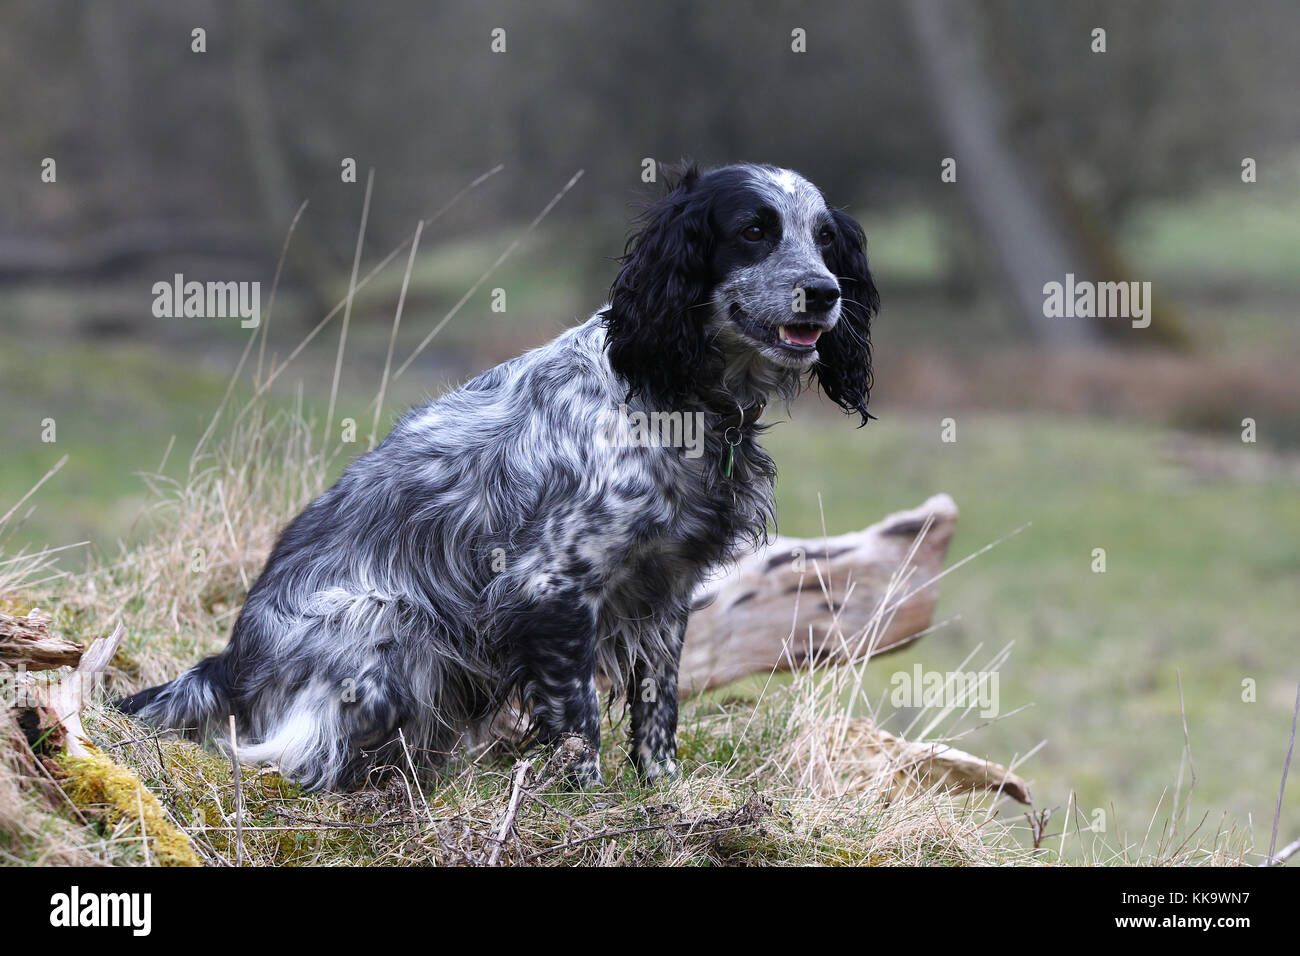 Spaniel - Working Cocker Working Cocker Spaniel Blue roan Stock